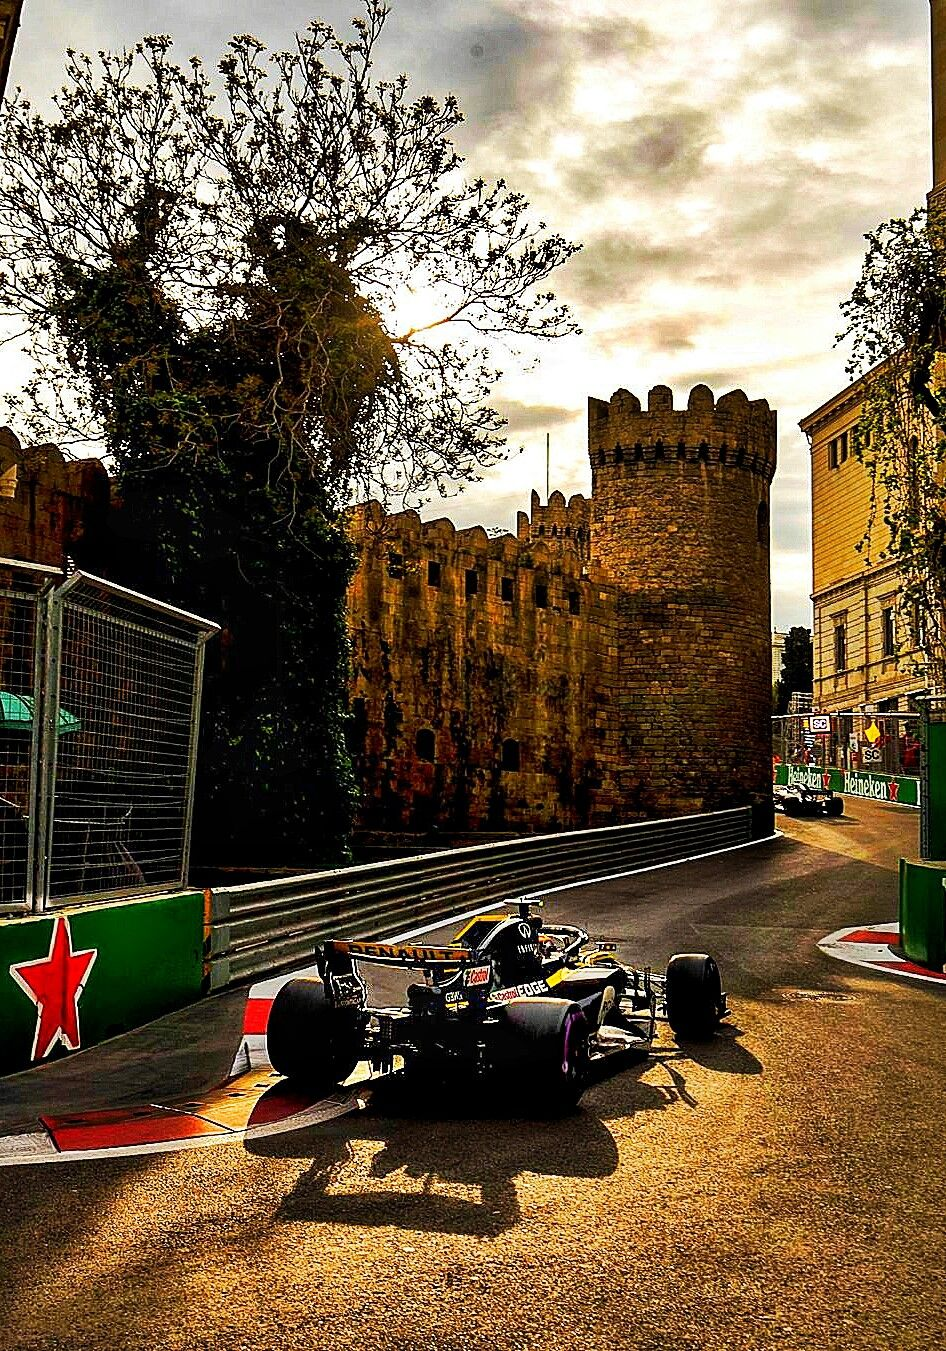 2018 Azerbaijan Gp The Renault F1 Team Demonstrating Their Mastery Of The Narrowest Streets In Formula 1 Racing This Is Why We Love Baku F1 Formula1 Aze